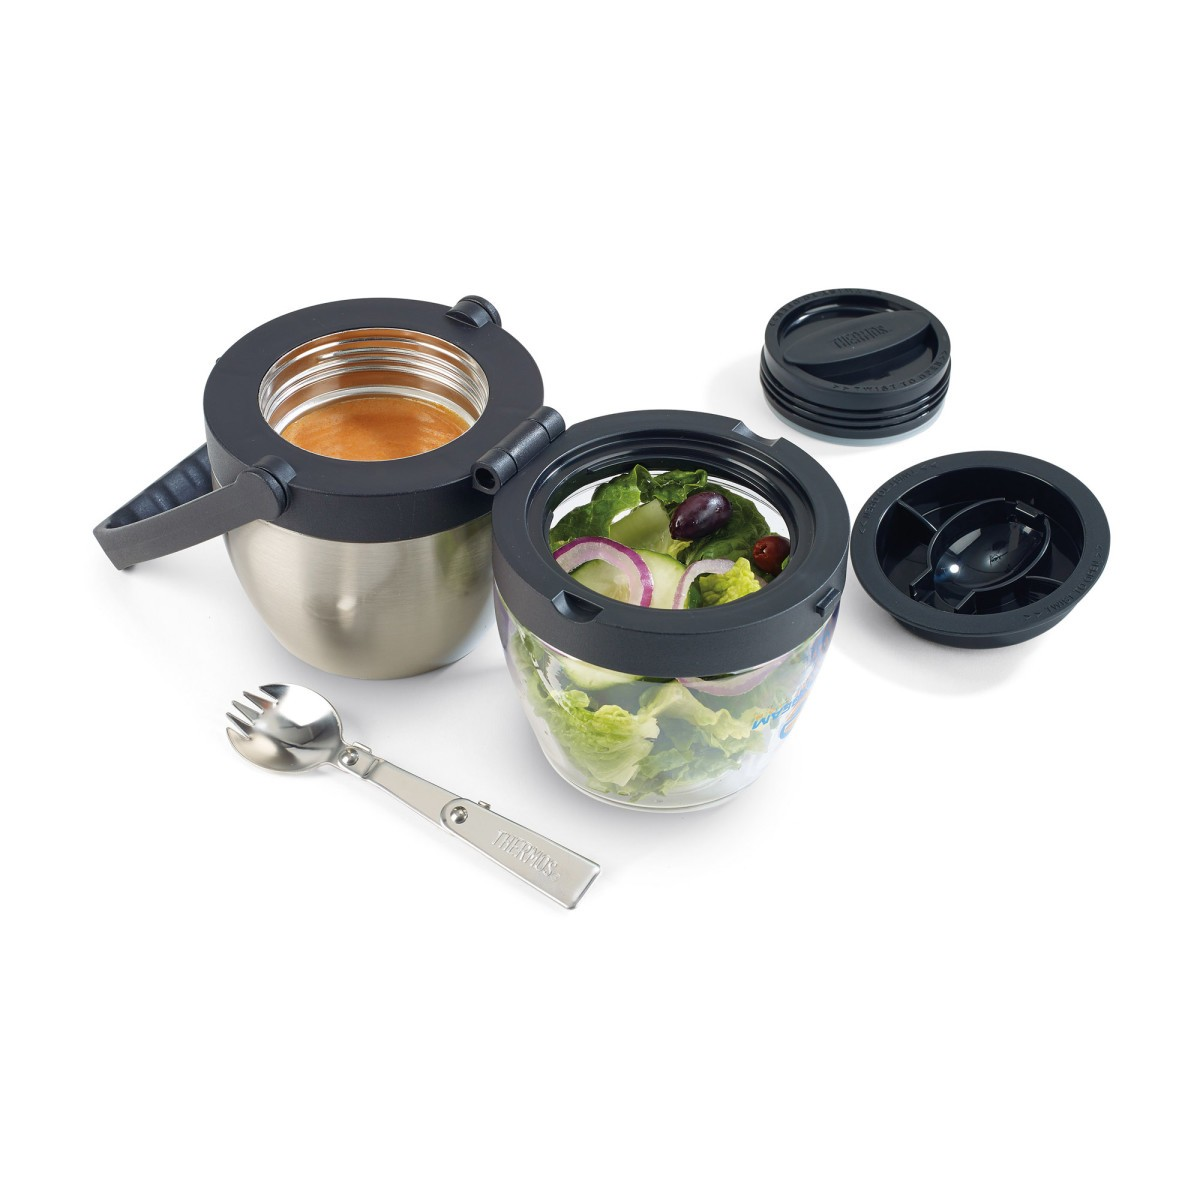 Thermos Dual Compartment Food Jar - 16 Oz.